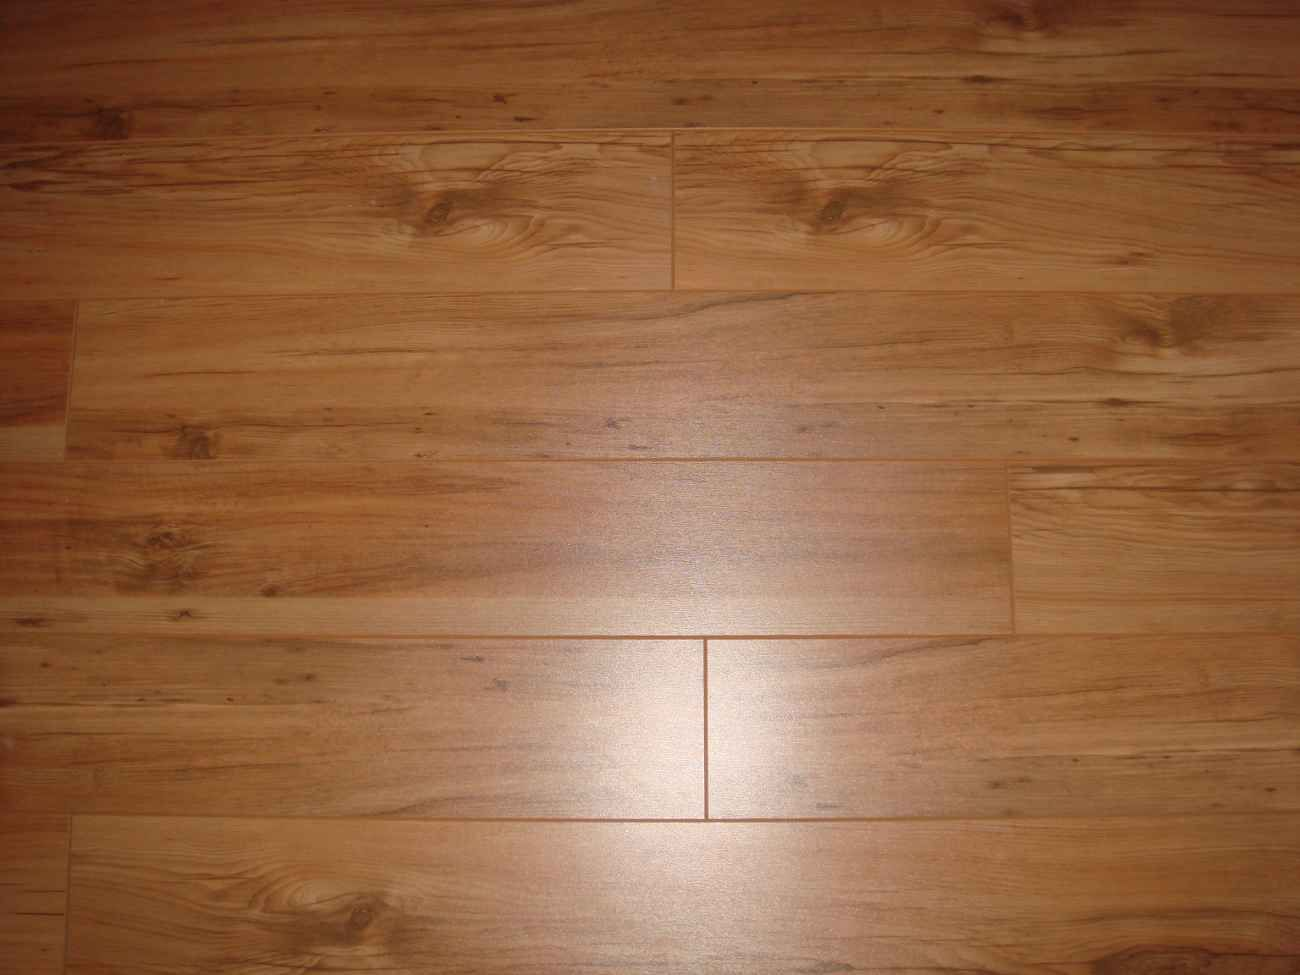 Best 25 ceramic tile floors ideas on pinterest ceramic tile ceramic tile that looks like wood wooden ceramic tile floors feel the home doublecrazyfo Image collections